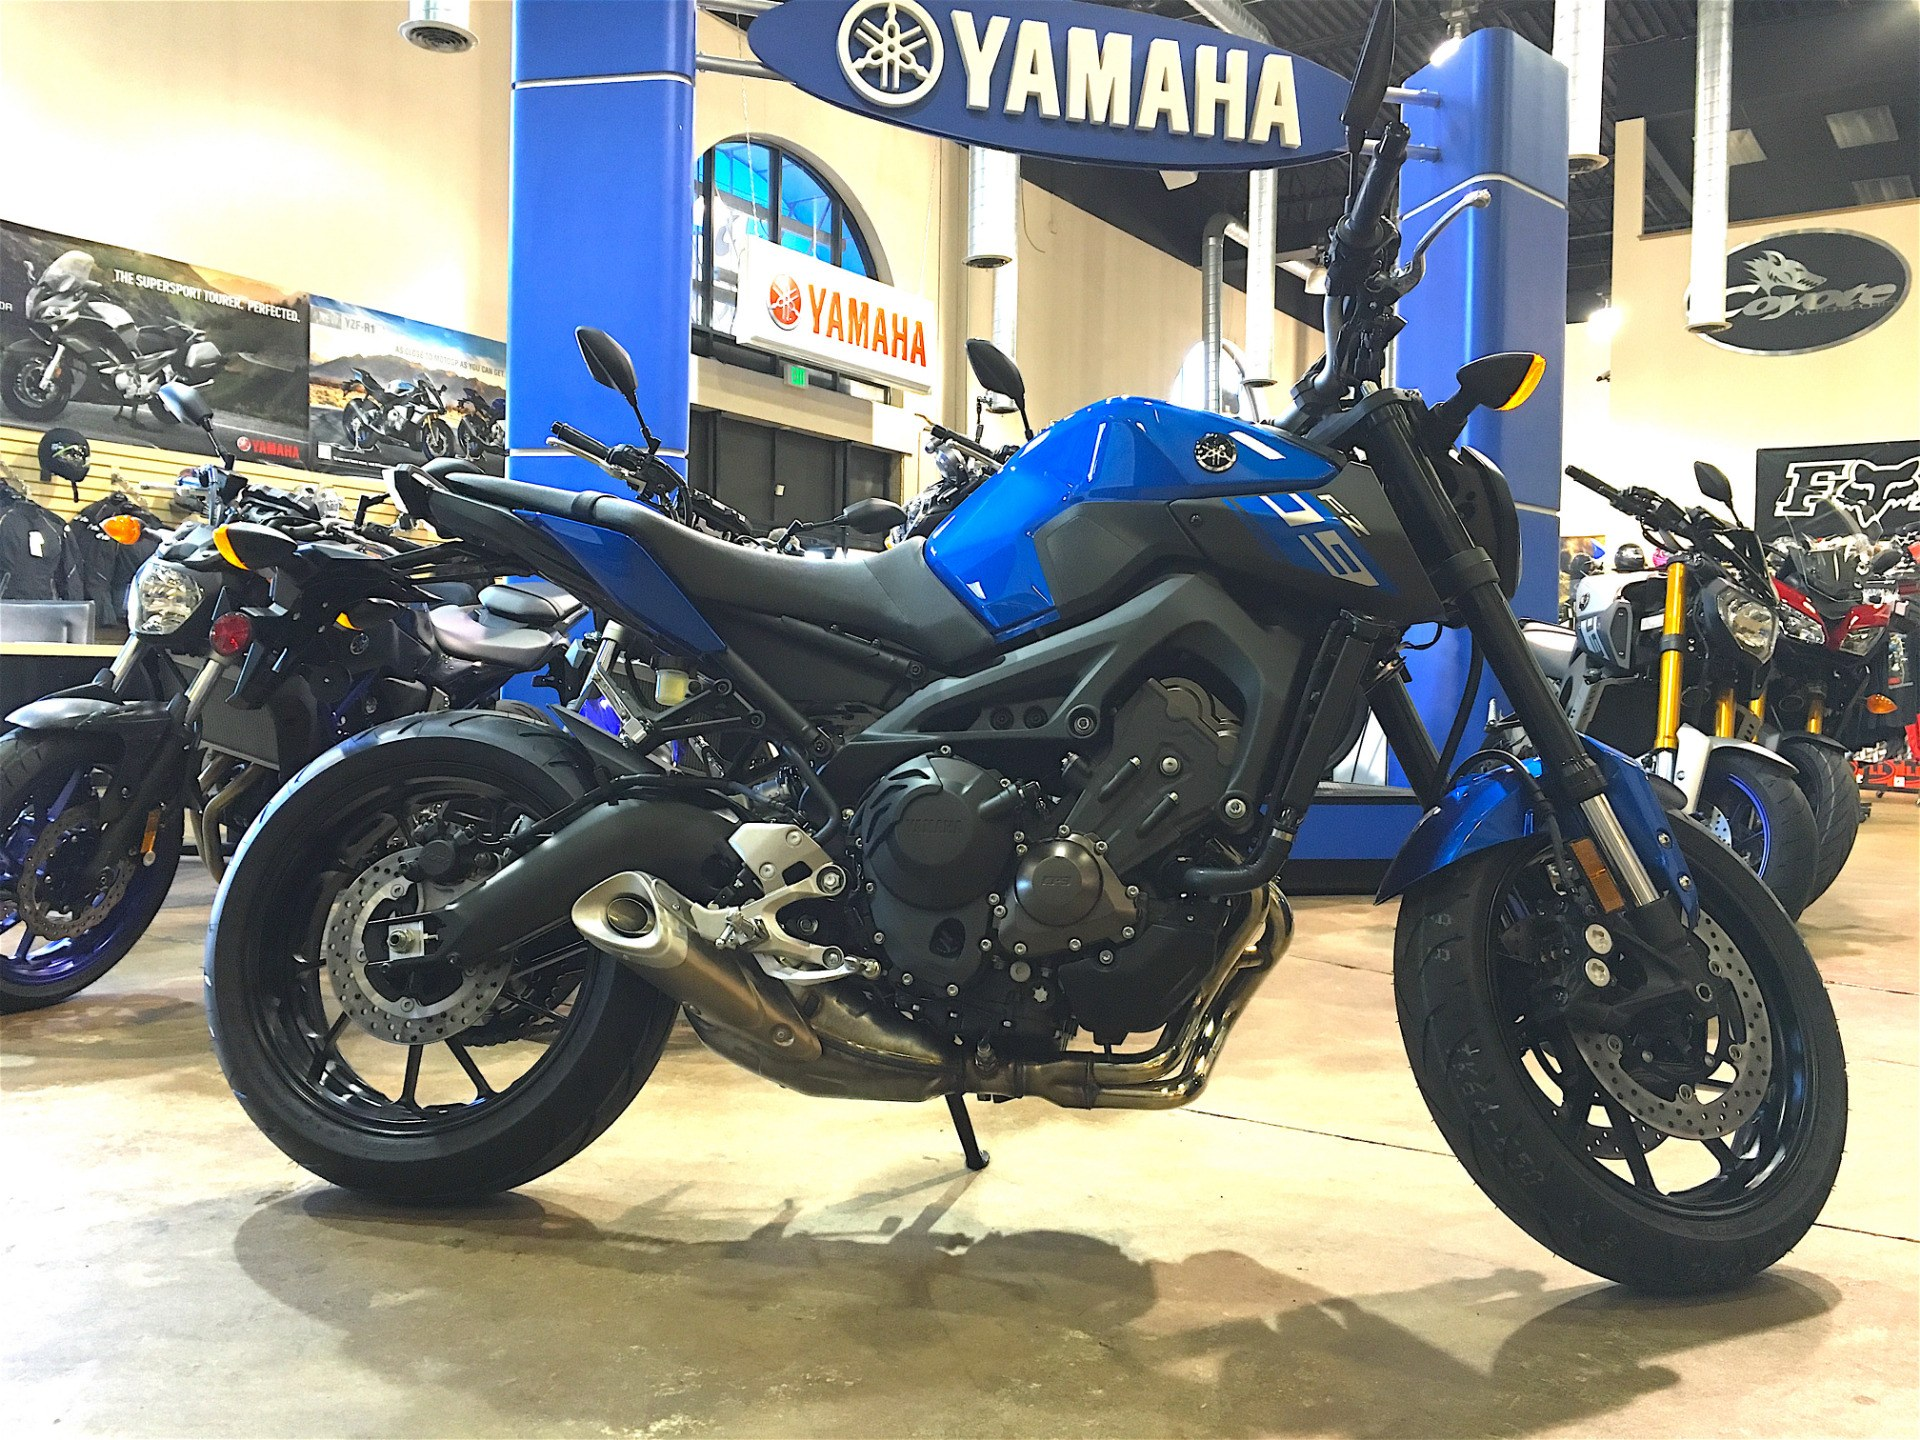 2016 Yamaha FZ-09 in Denver, Colorado